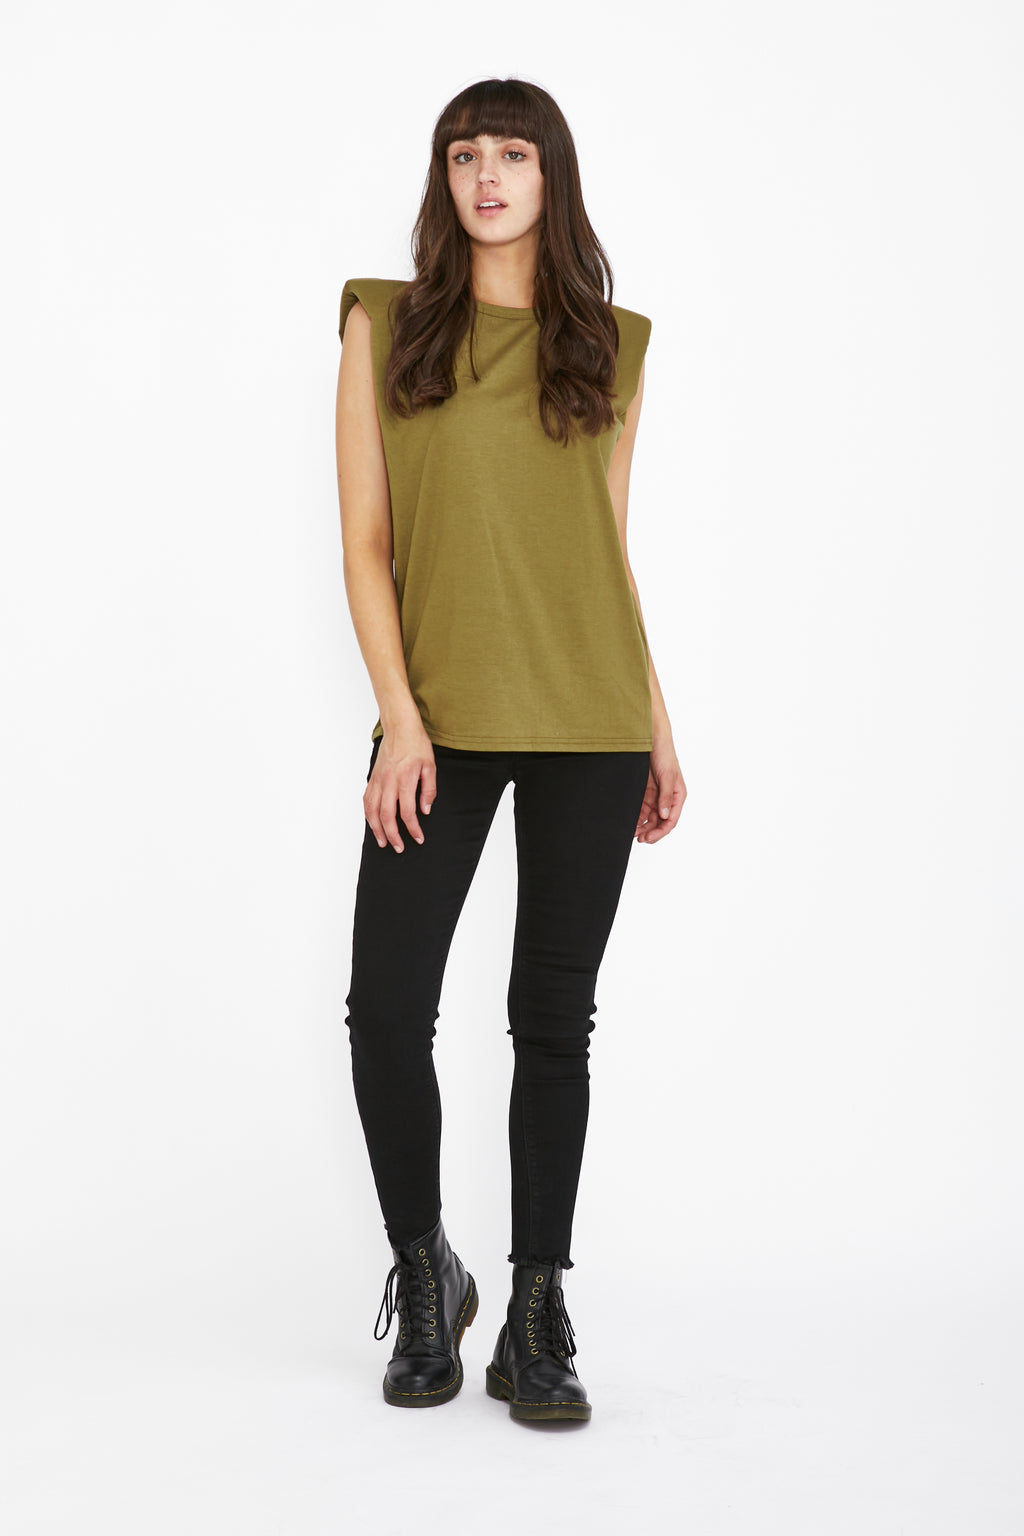 LIVIA SHOULDER DETAIL TEE - OLIVE